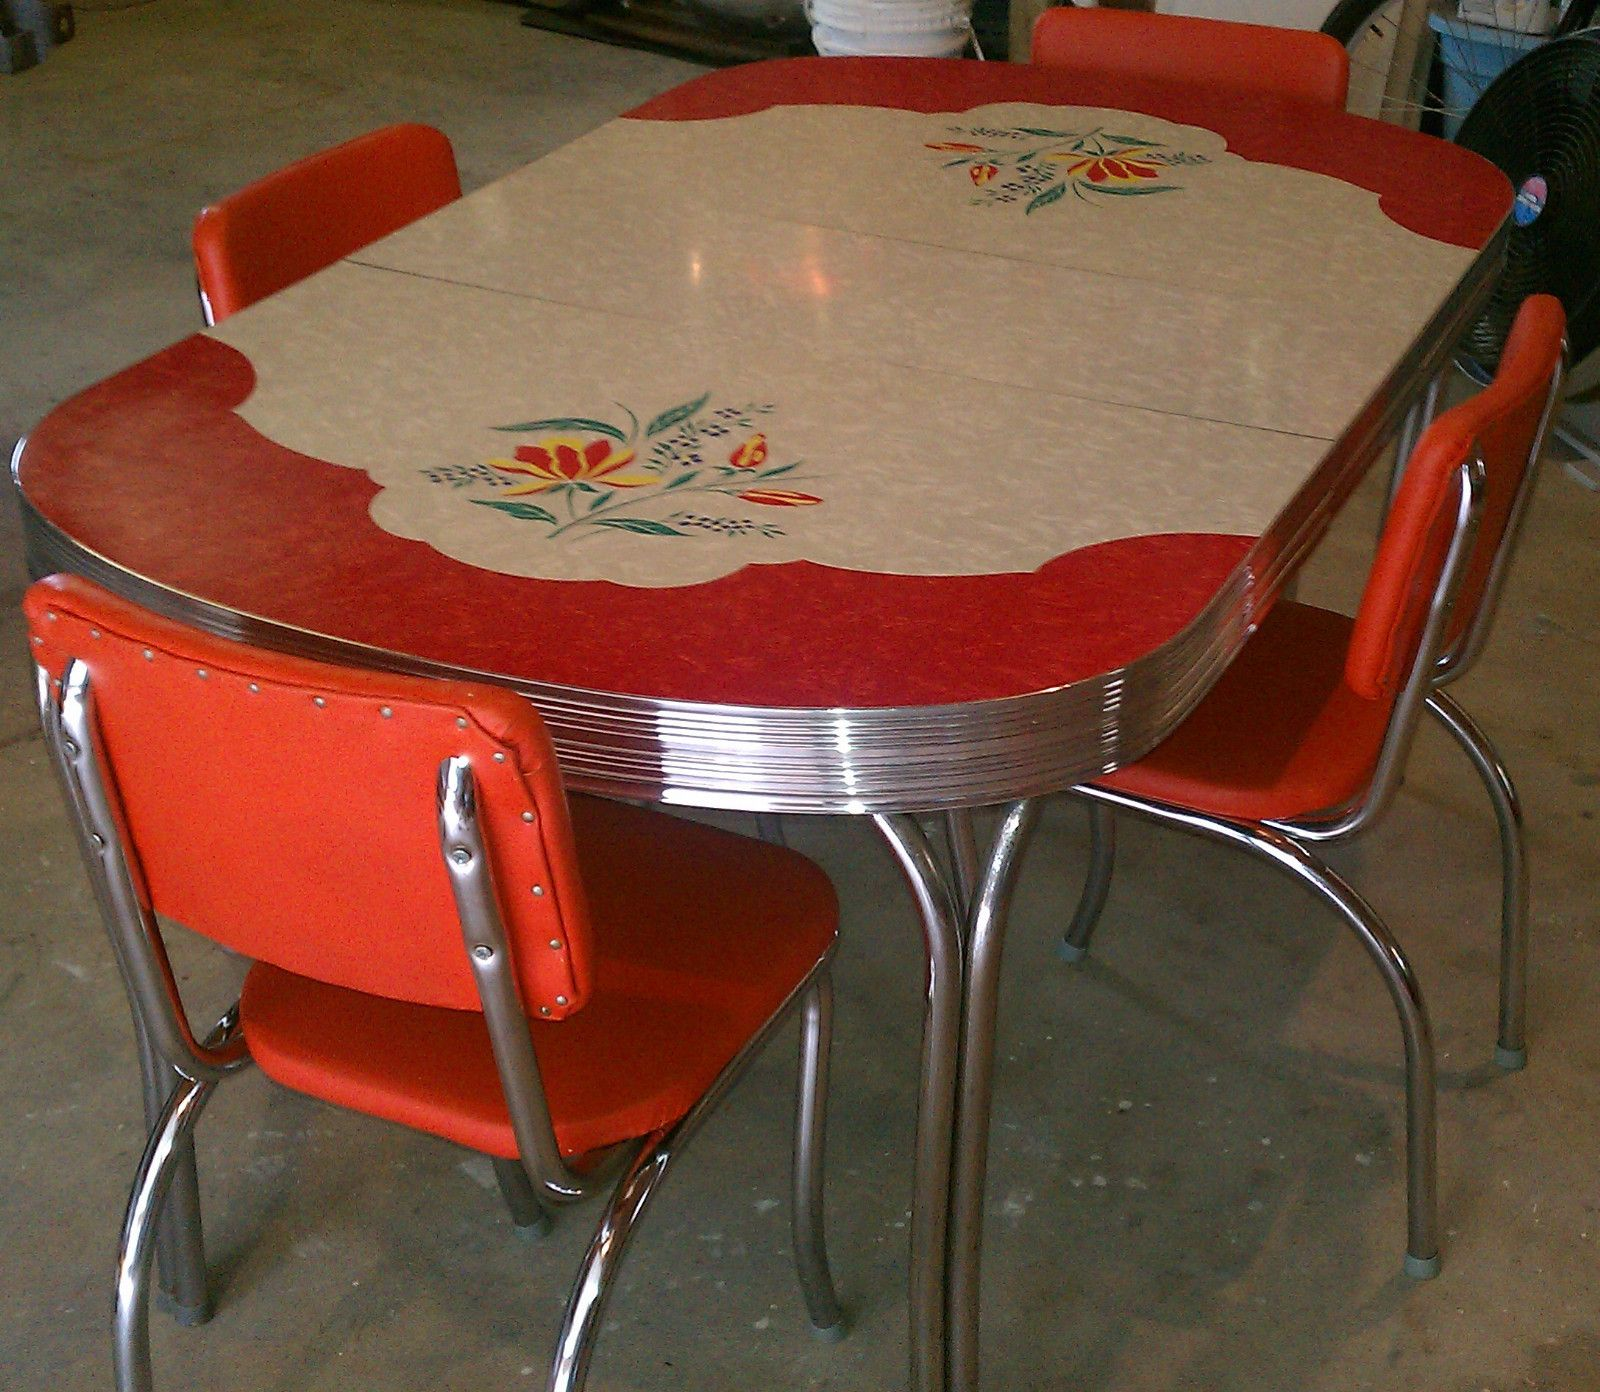 retro kitchen table sets Love this table Vintage Kitchen Formica Table 4 Chairs Chrome Orange Red White Gray